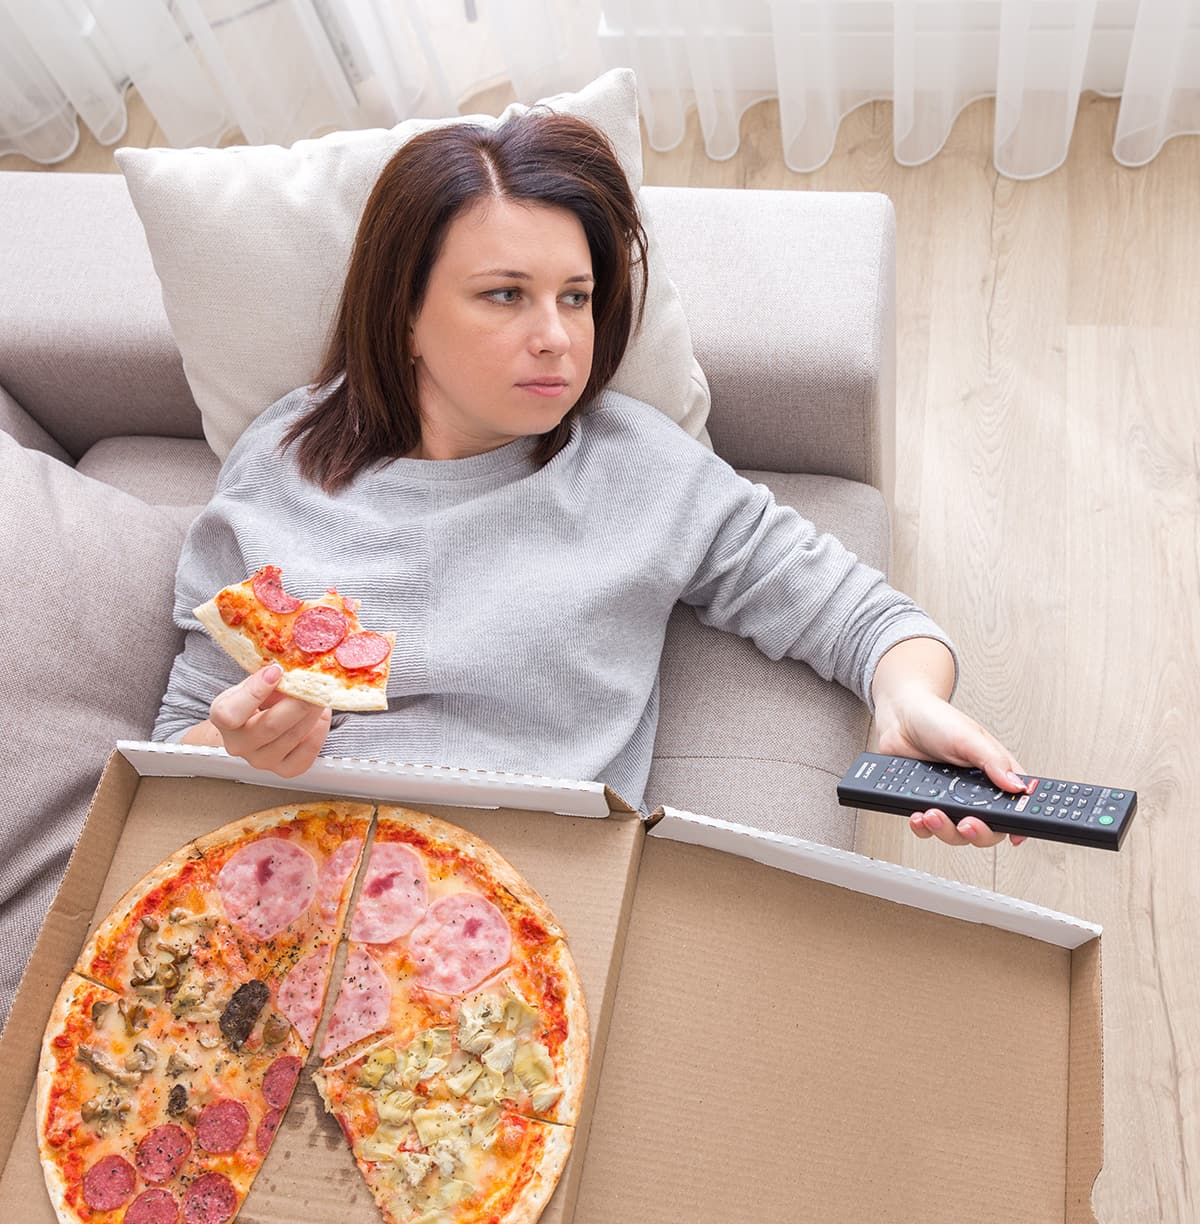 tired woman eating pizza on couch